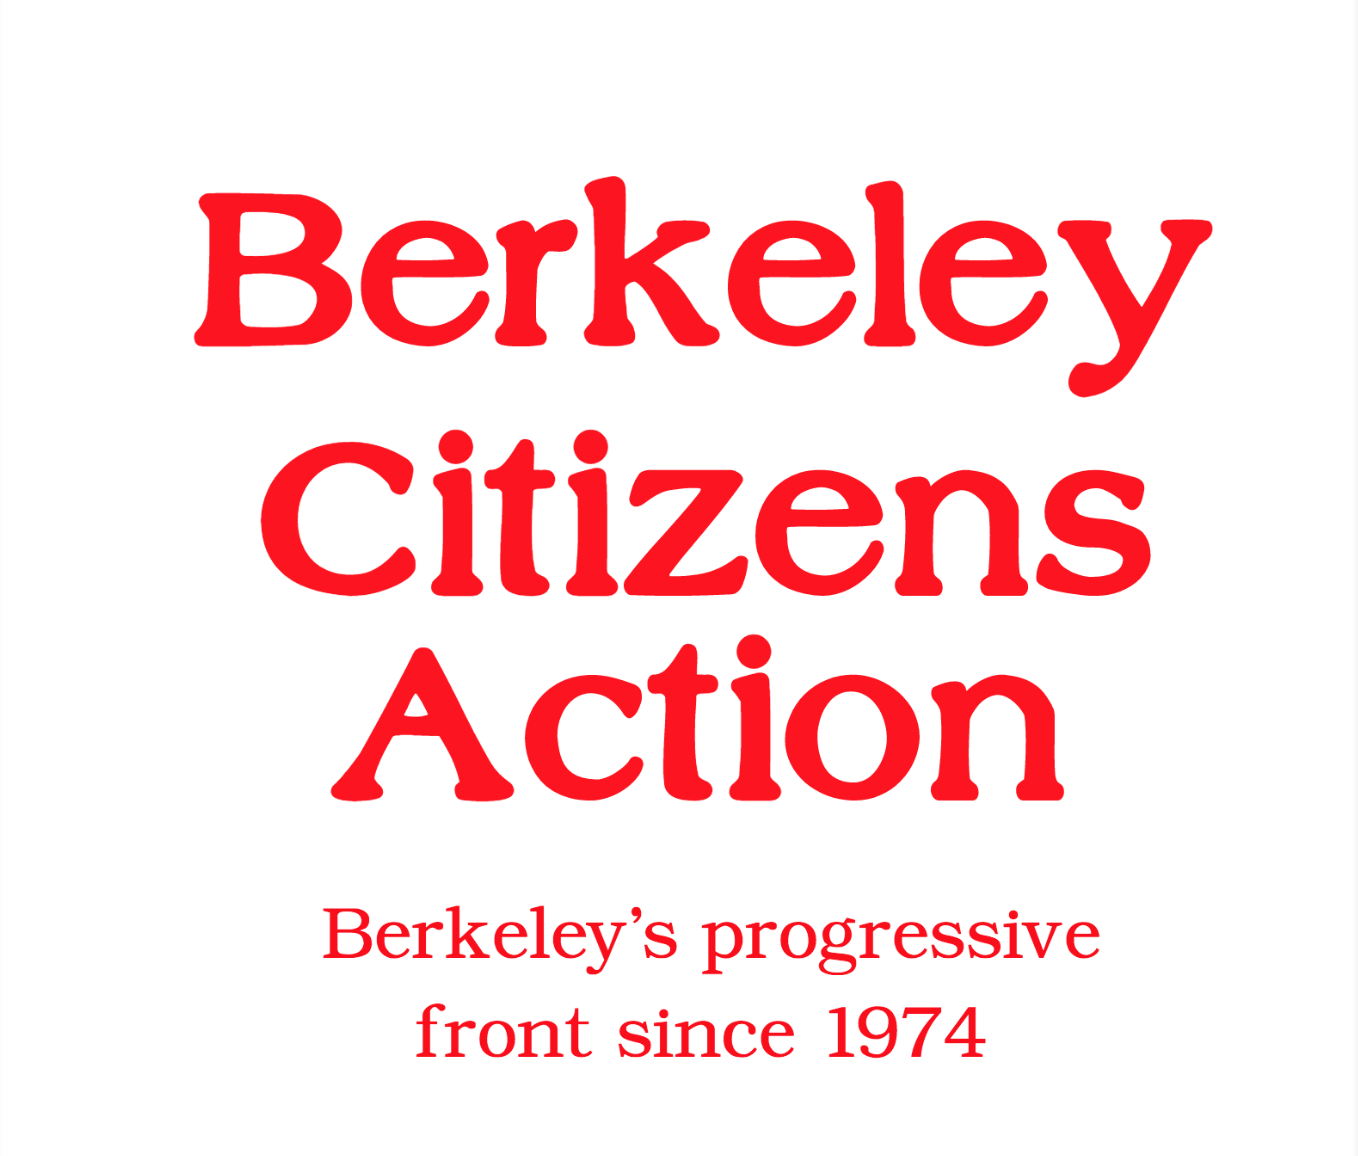 A photo of Berkeley Citizens Action